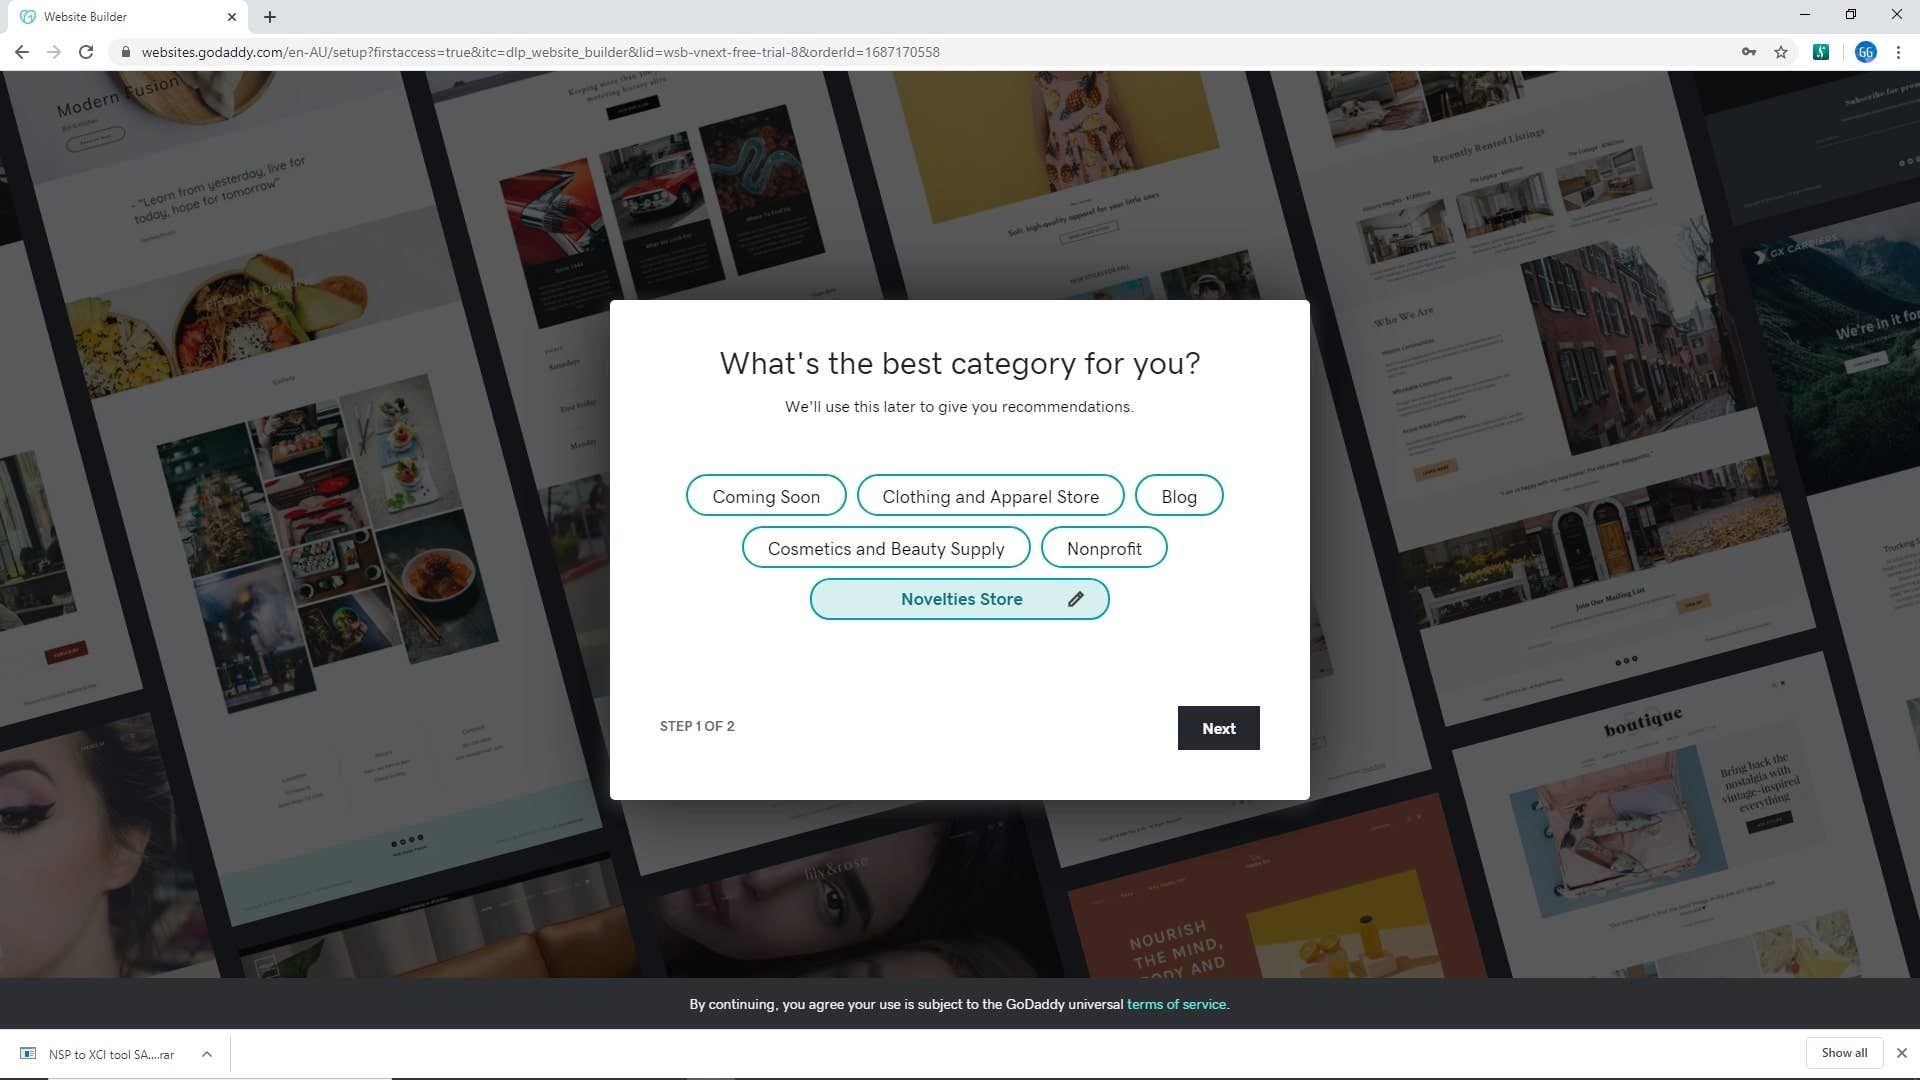 godaddy website builder how to category screen